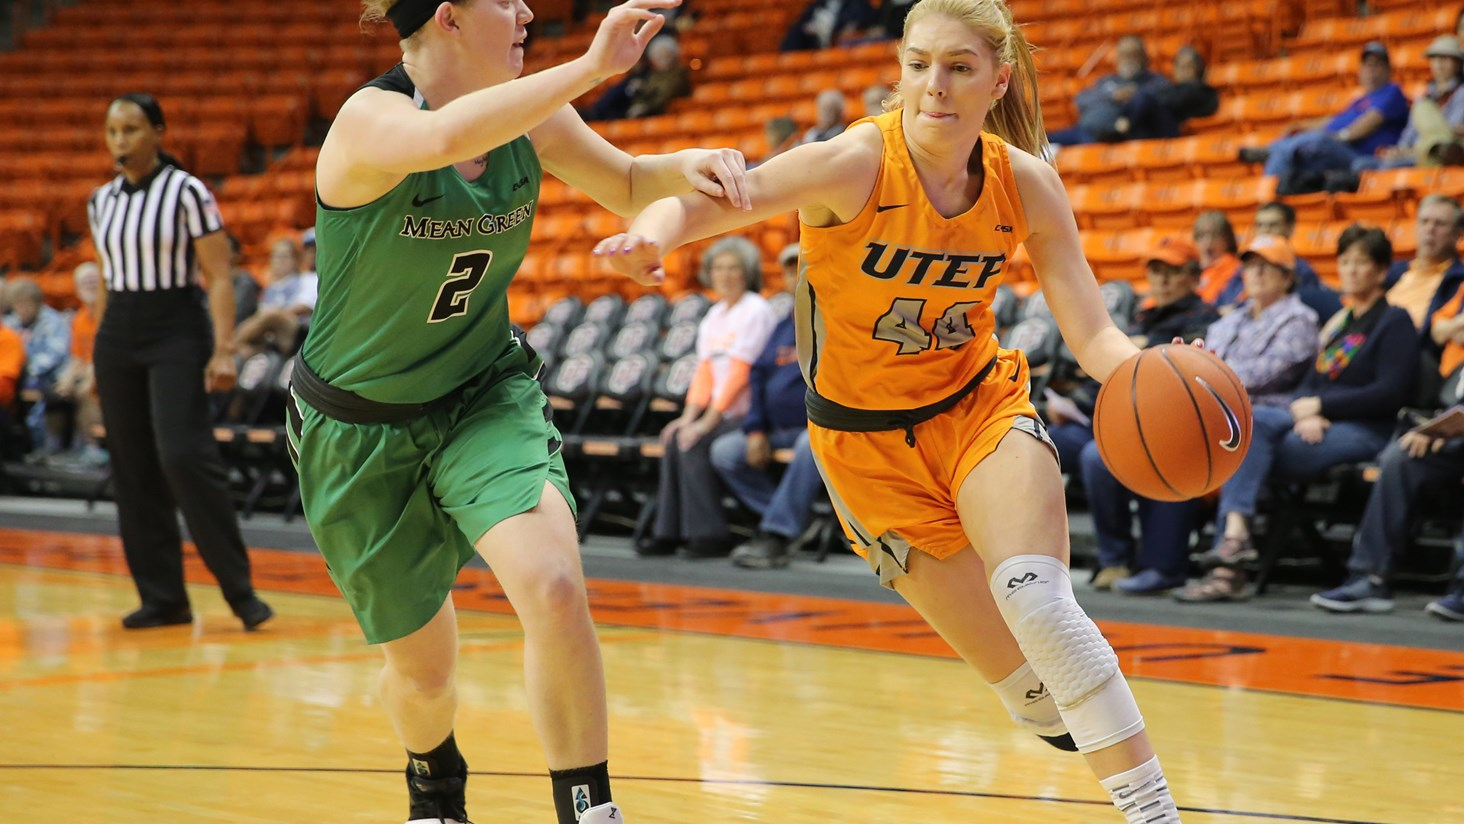 54452445b3d UTEP Women s Basketball Notes   C-USA First Round   Vs. Marshall ...